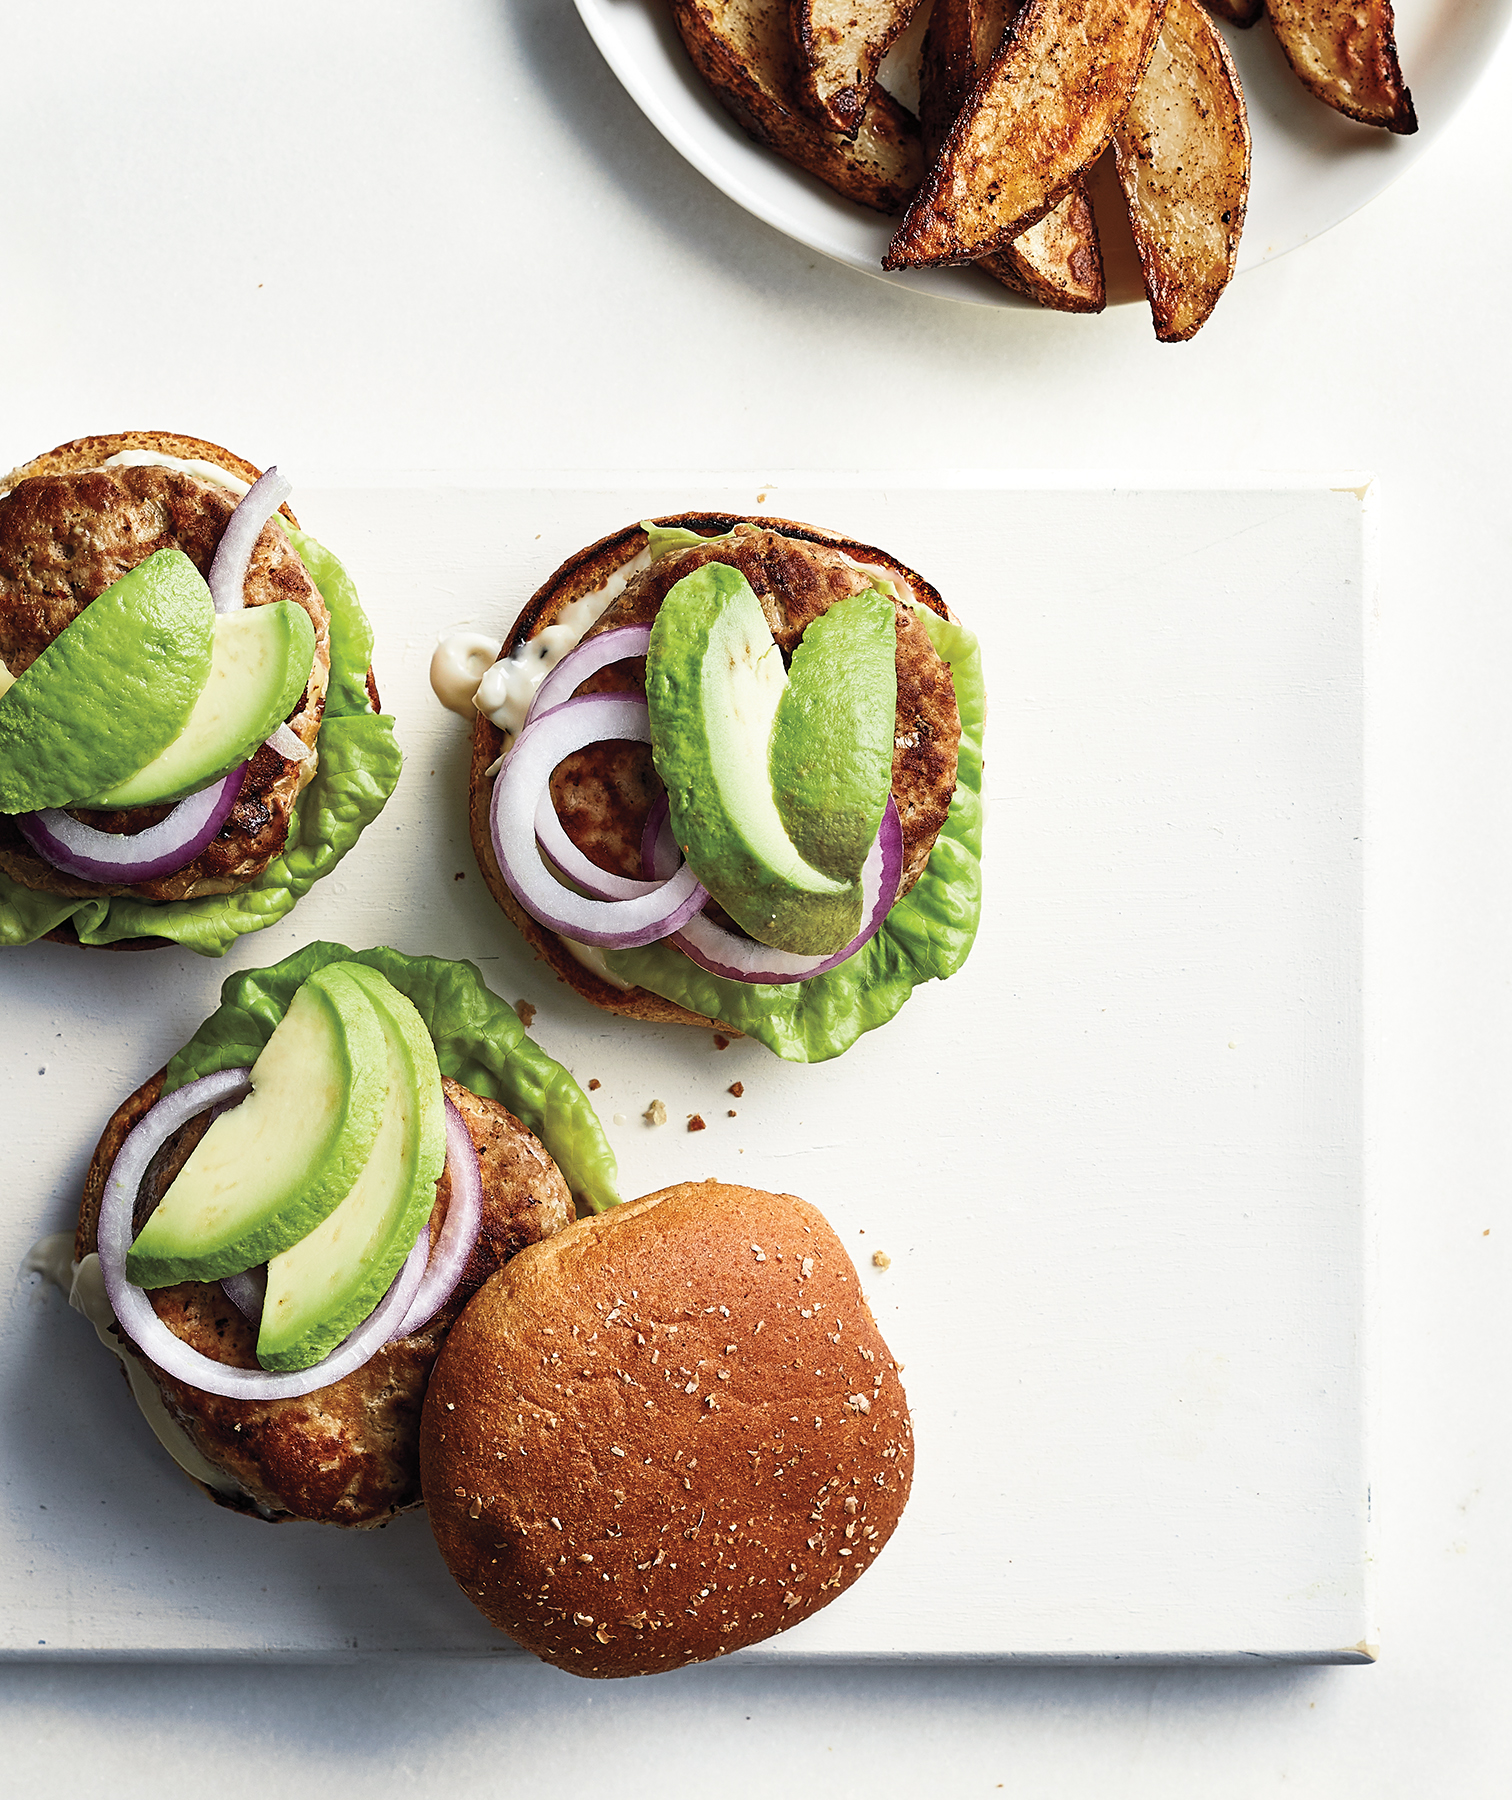 Turkey Burgers With Lime Mayo and Avocado